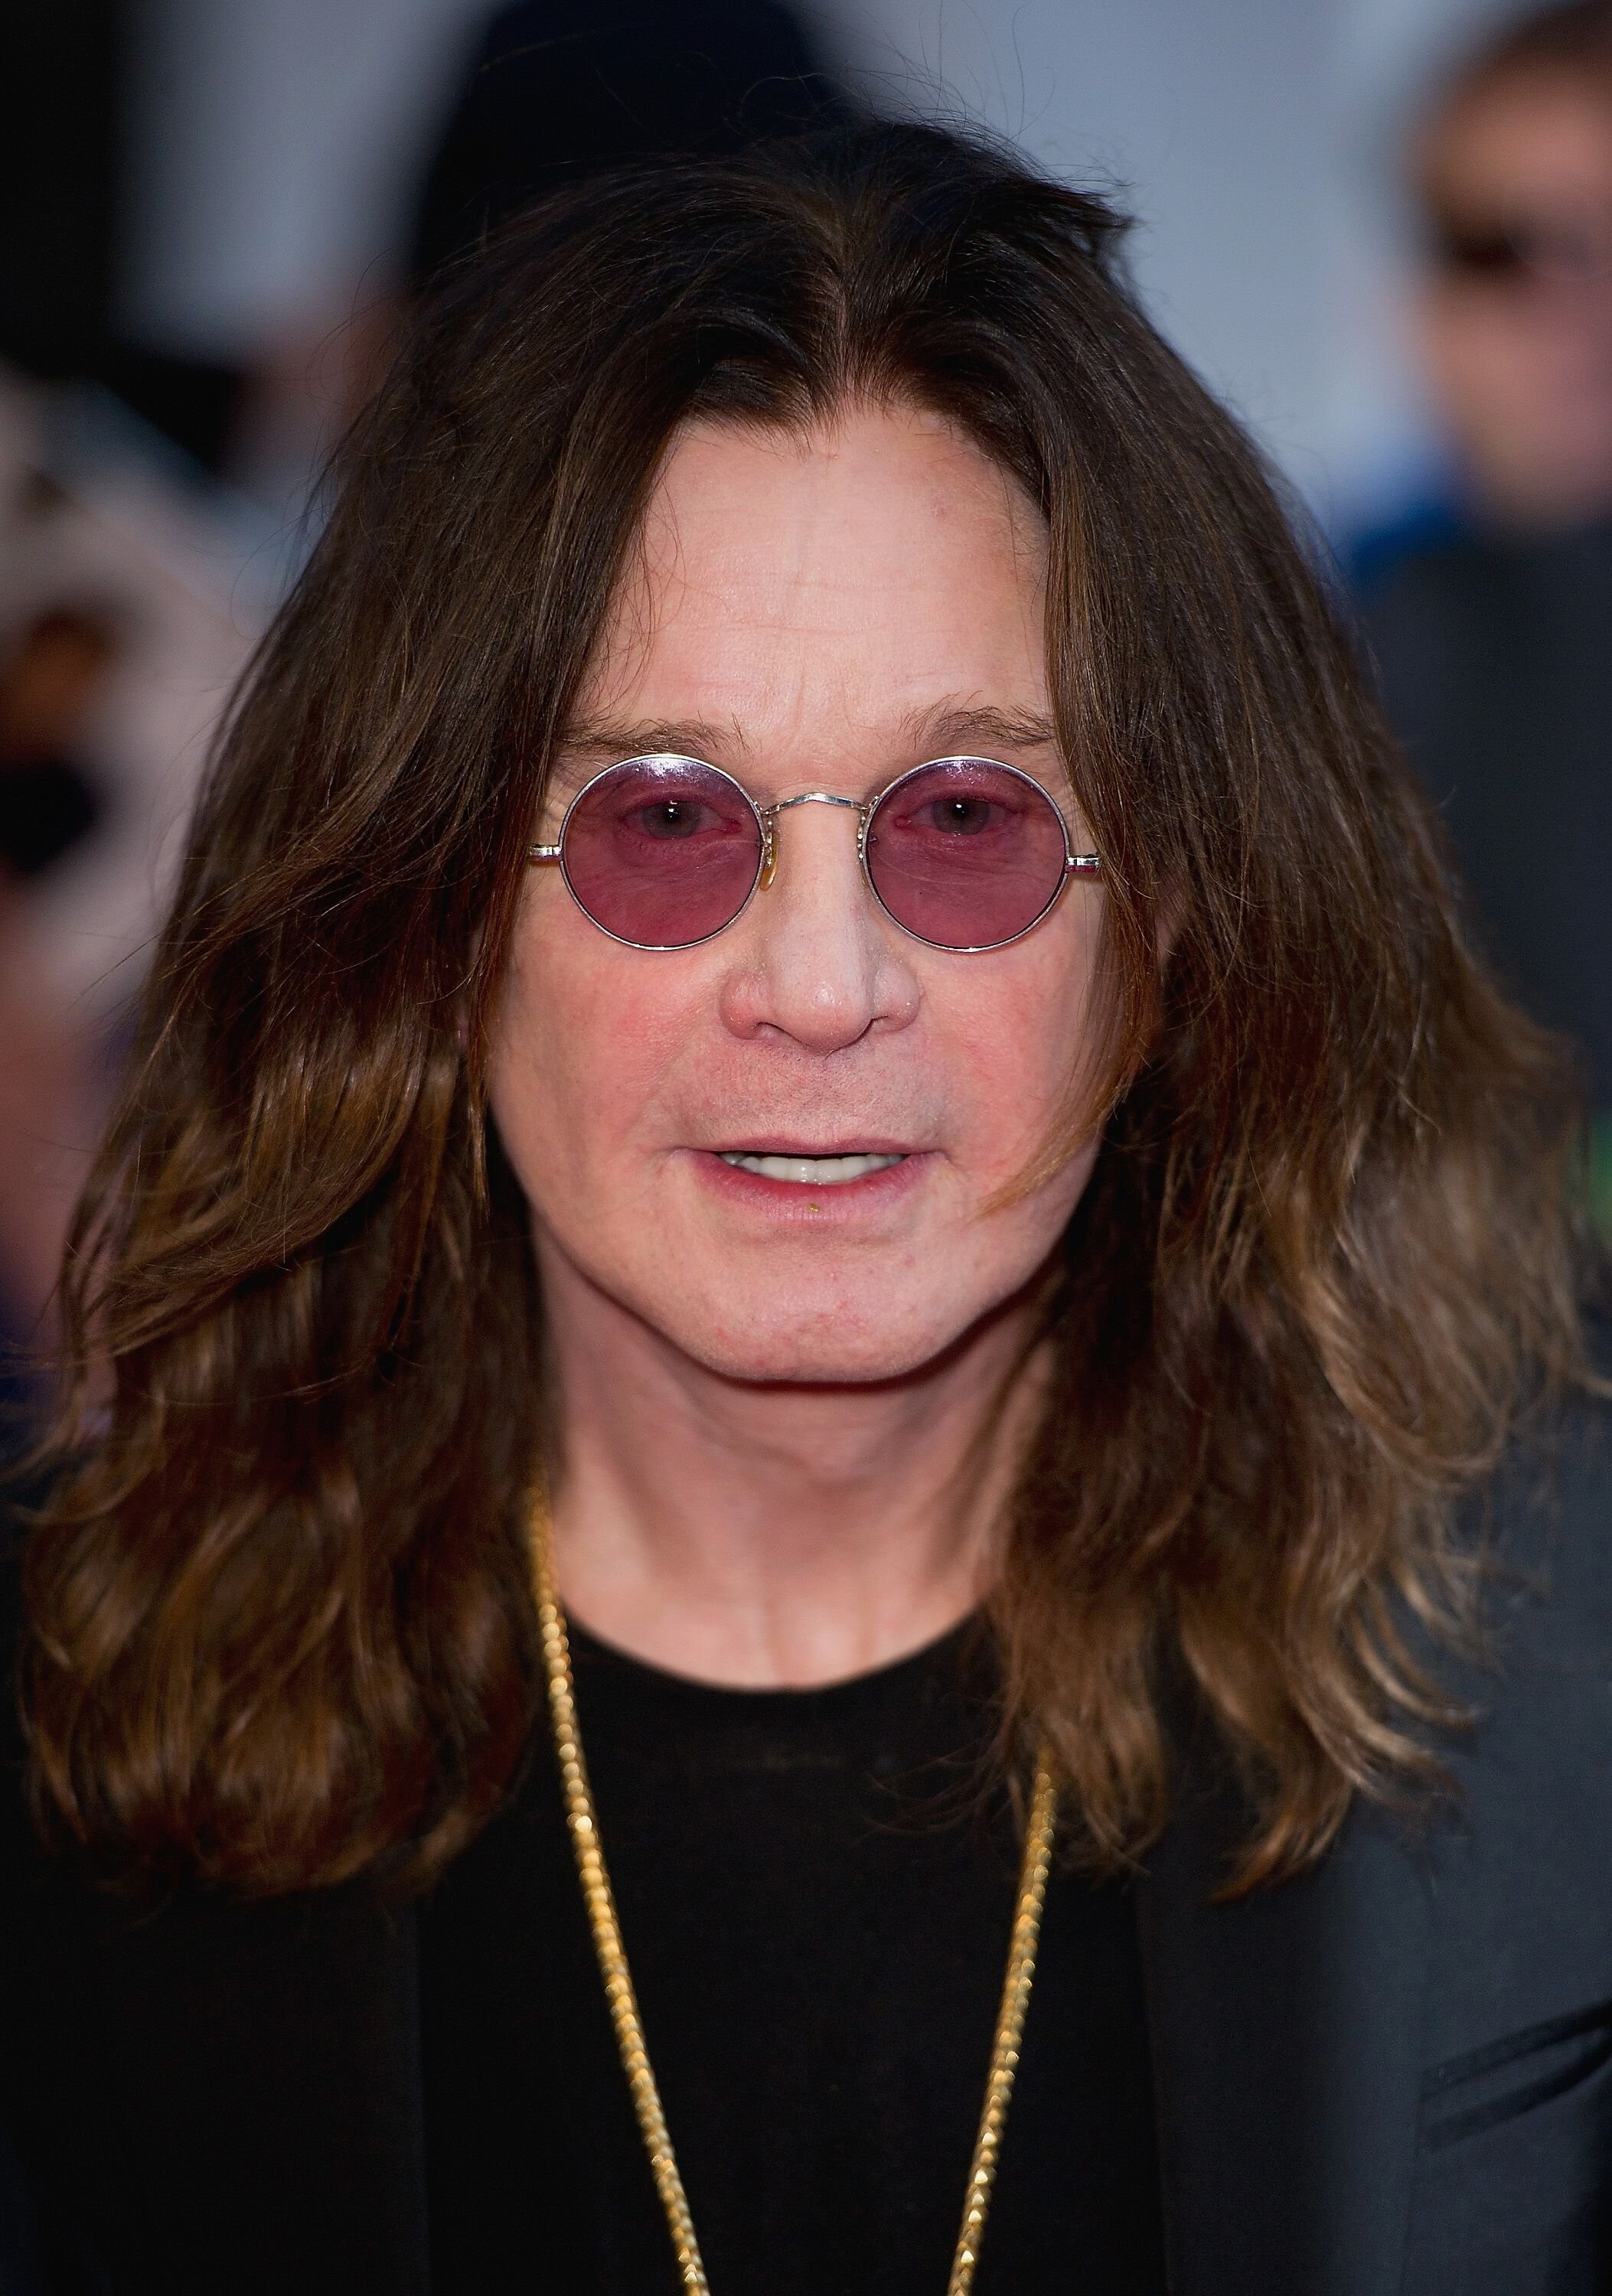 Ozzy Osbourne assiste à la remise des prix de la Pride of Britain à l'hôtel Grosvenor House le 28 septembre 2015 à Londres, en Angleterre. | Photo : Getty Images